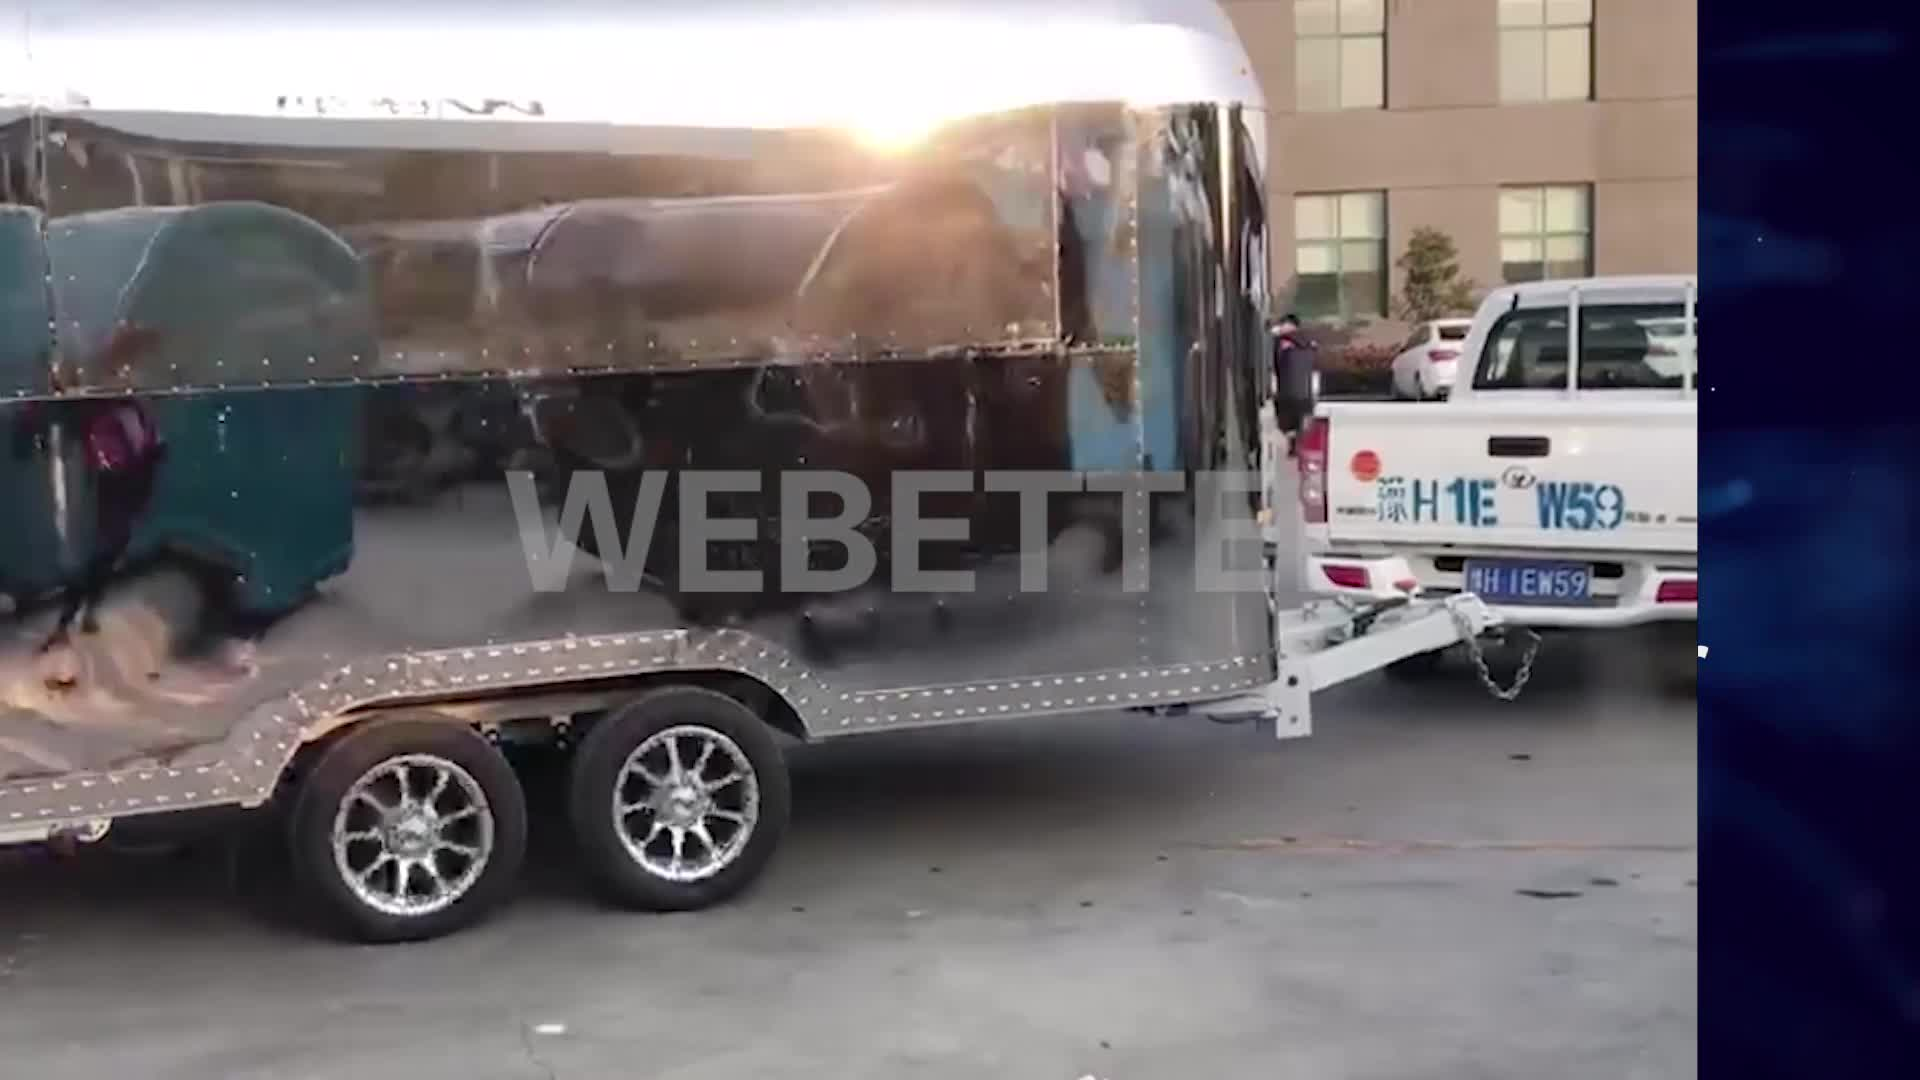 Airtream Food Truck Ec Type Approval Catering Trailers Burger Food Van Coffee Bar Buy Airtream Food Truck Catering Trailers Food Van Product On Alibaba Com